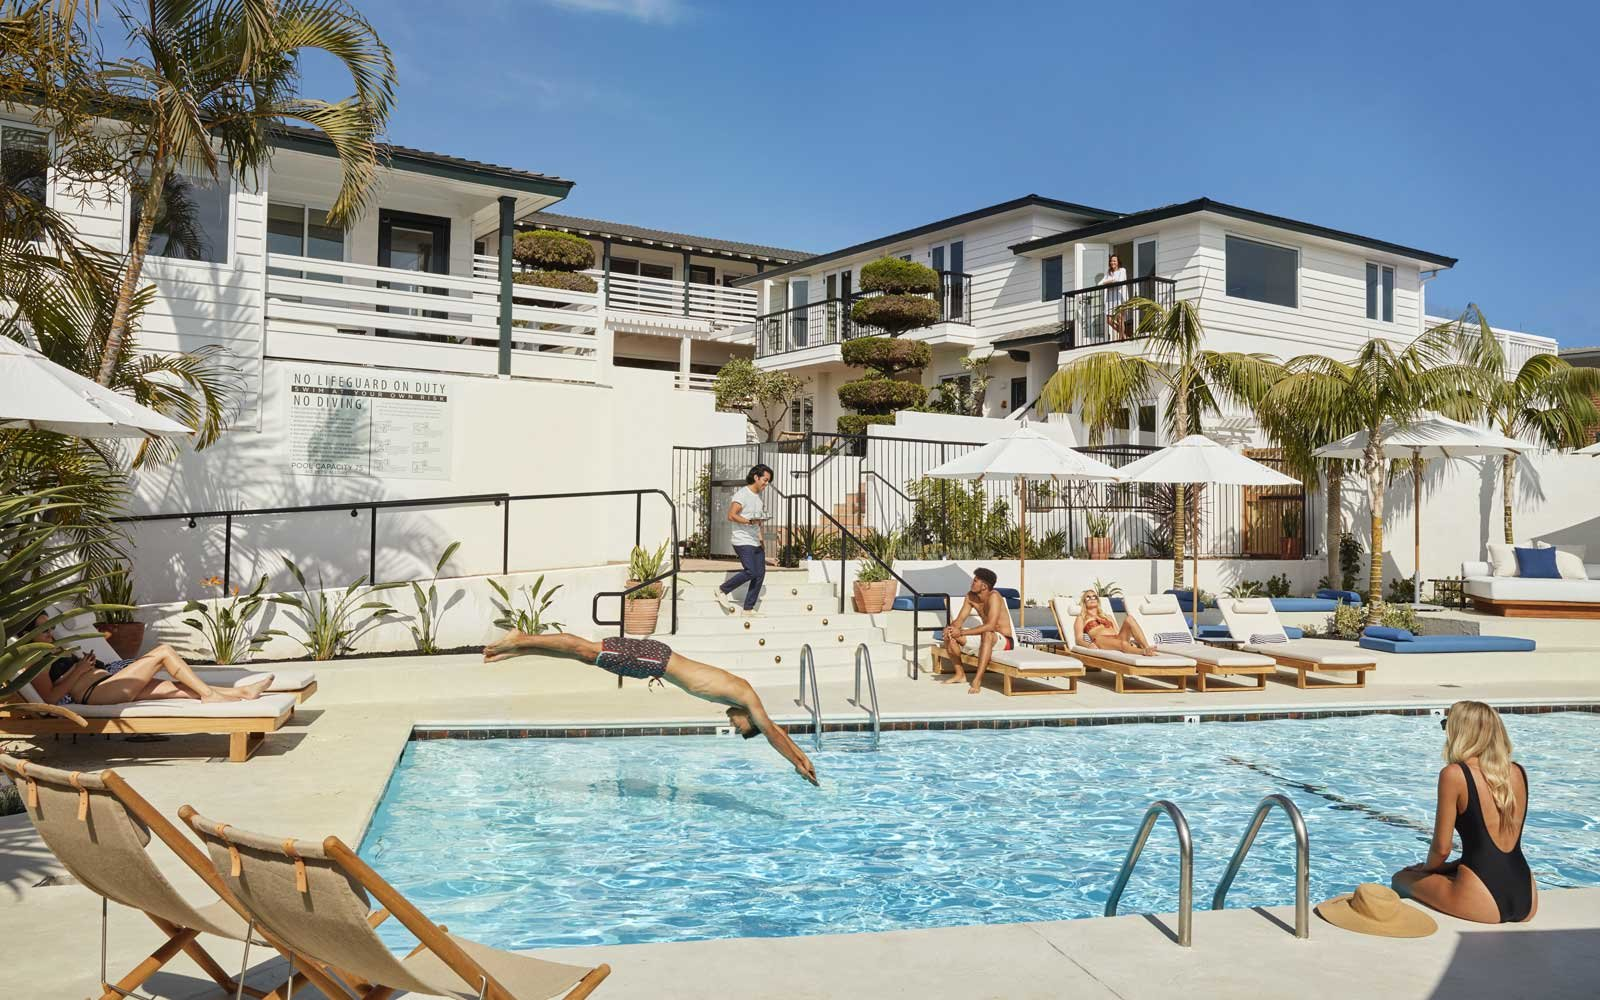 Pool scene at the Hotel Joaquin, in Laguna Beach, California